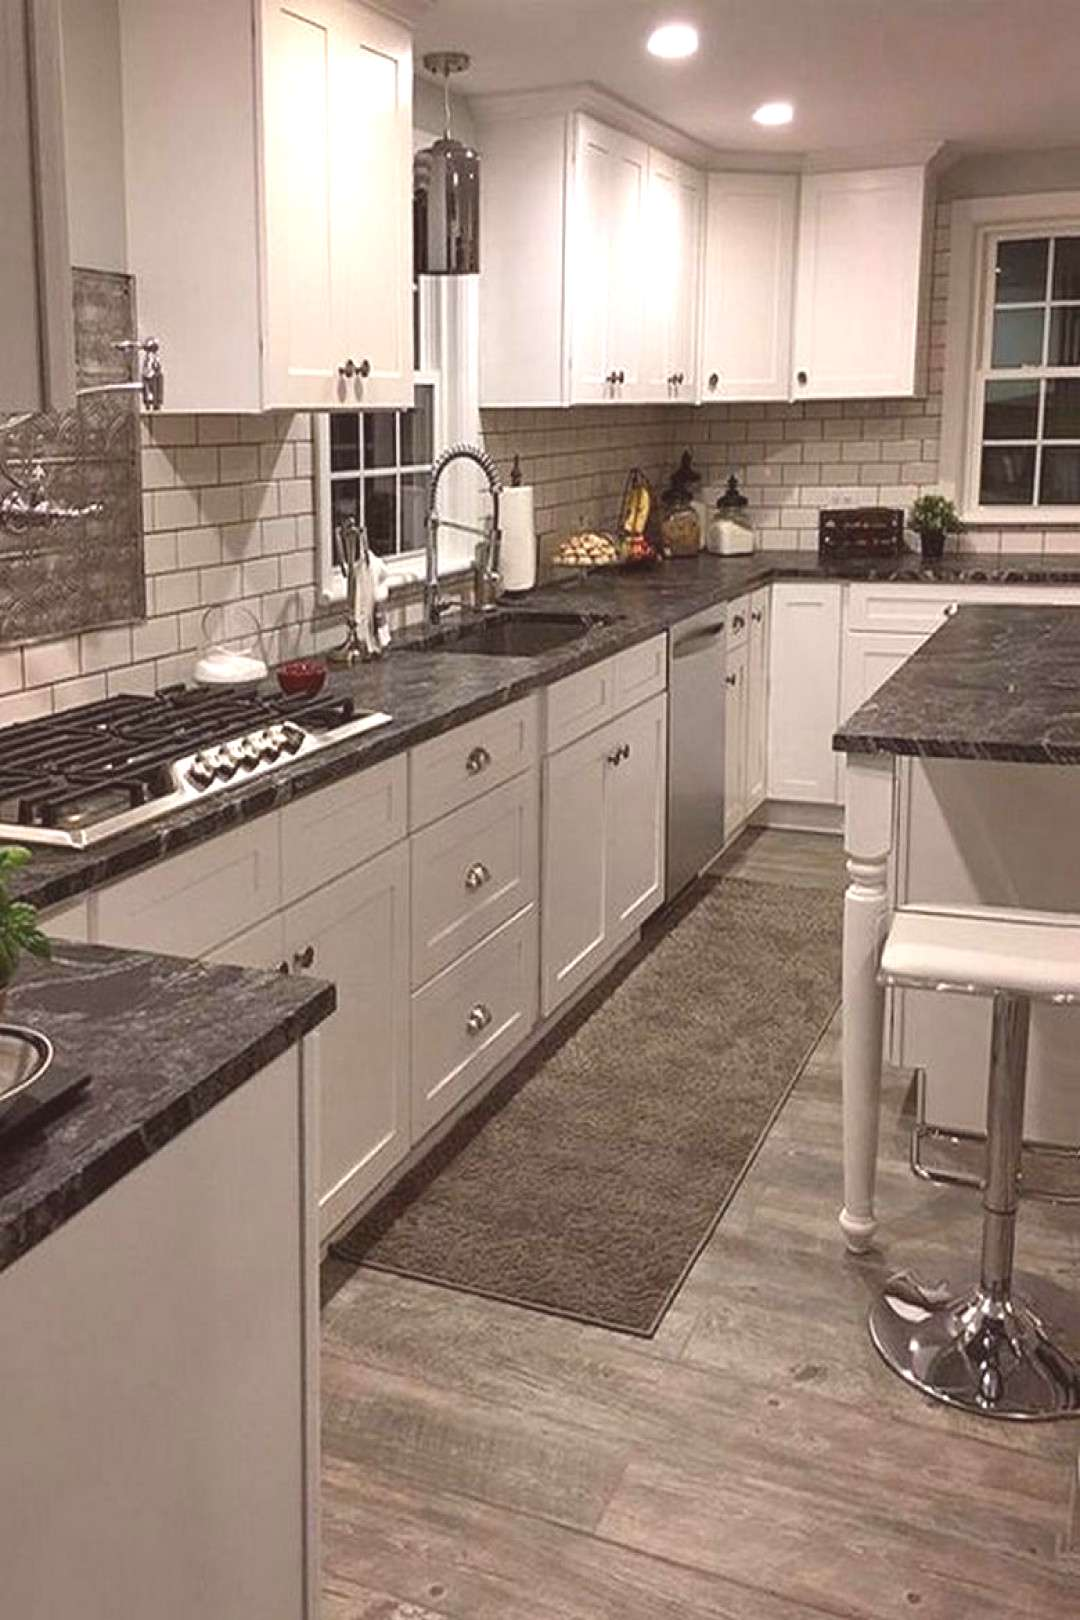 ✔️ 86 Ideas For Backsplash For Black Granite Countertops And Maple Cabinets Are Most Interest..